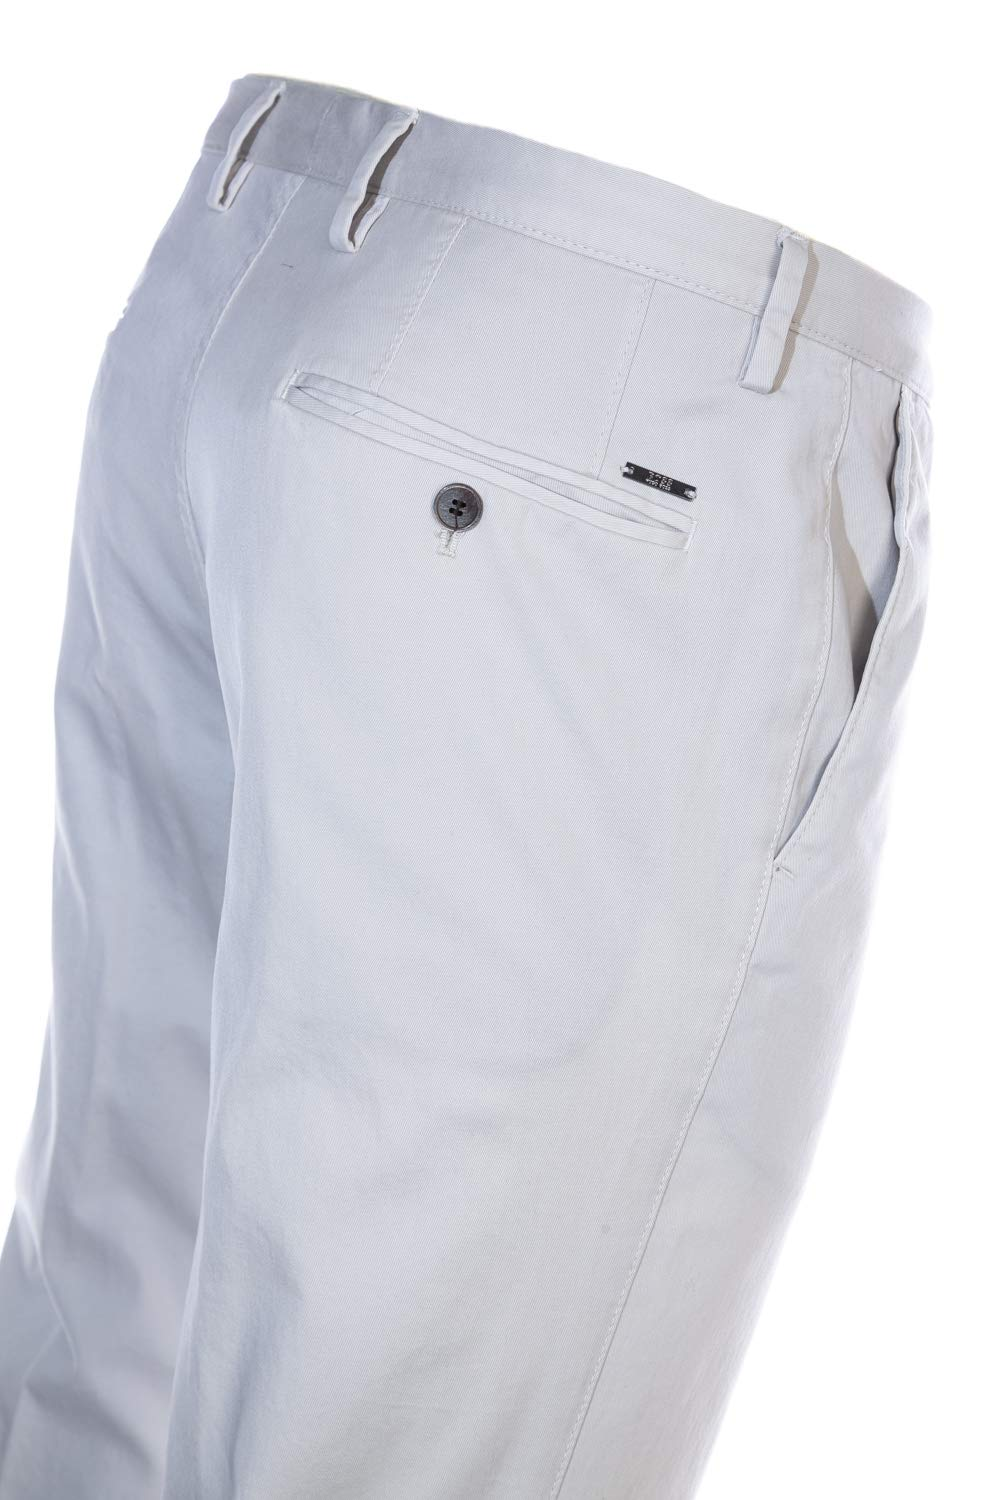 903ced9111e BOSS Stanino-16W Trouser in Off White d5462c - mantle.cbcfranchising.com